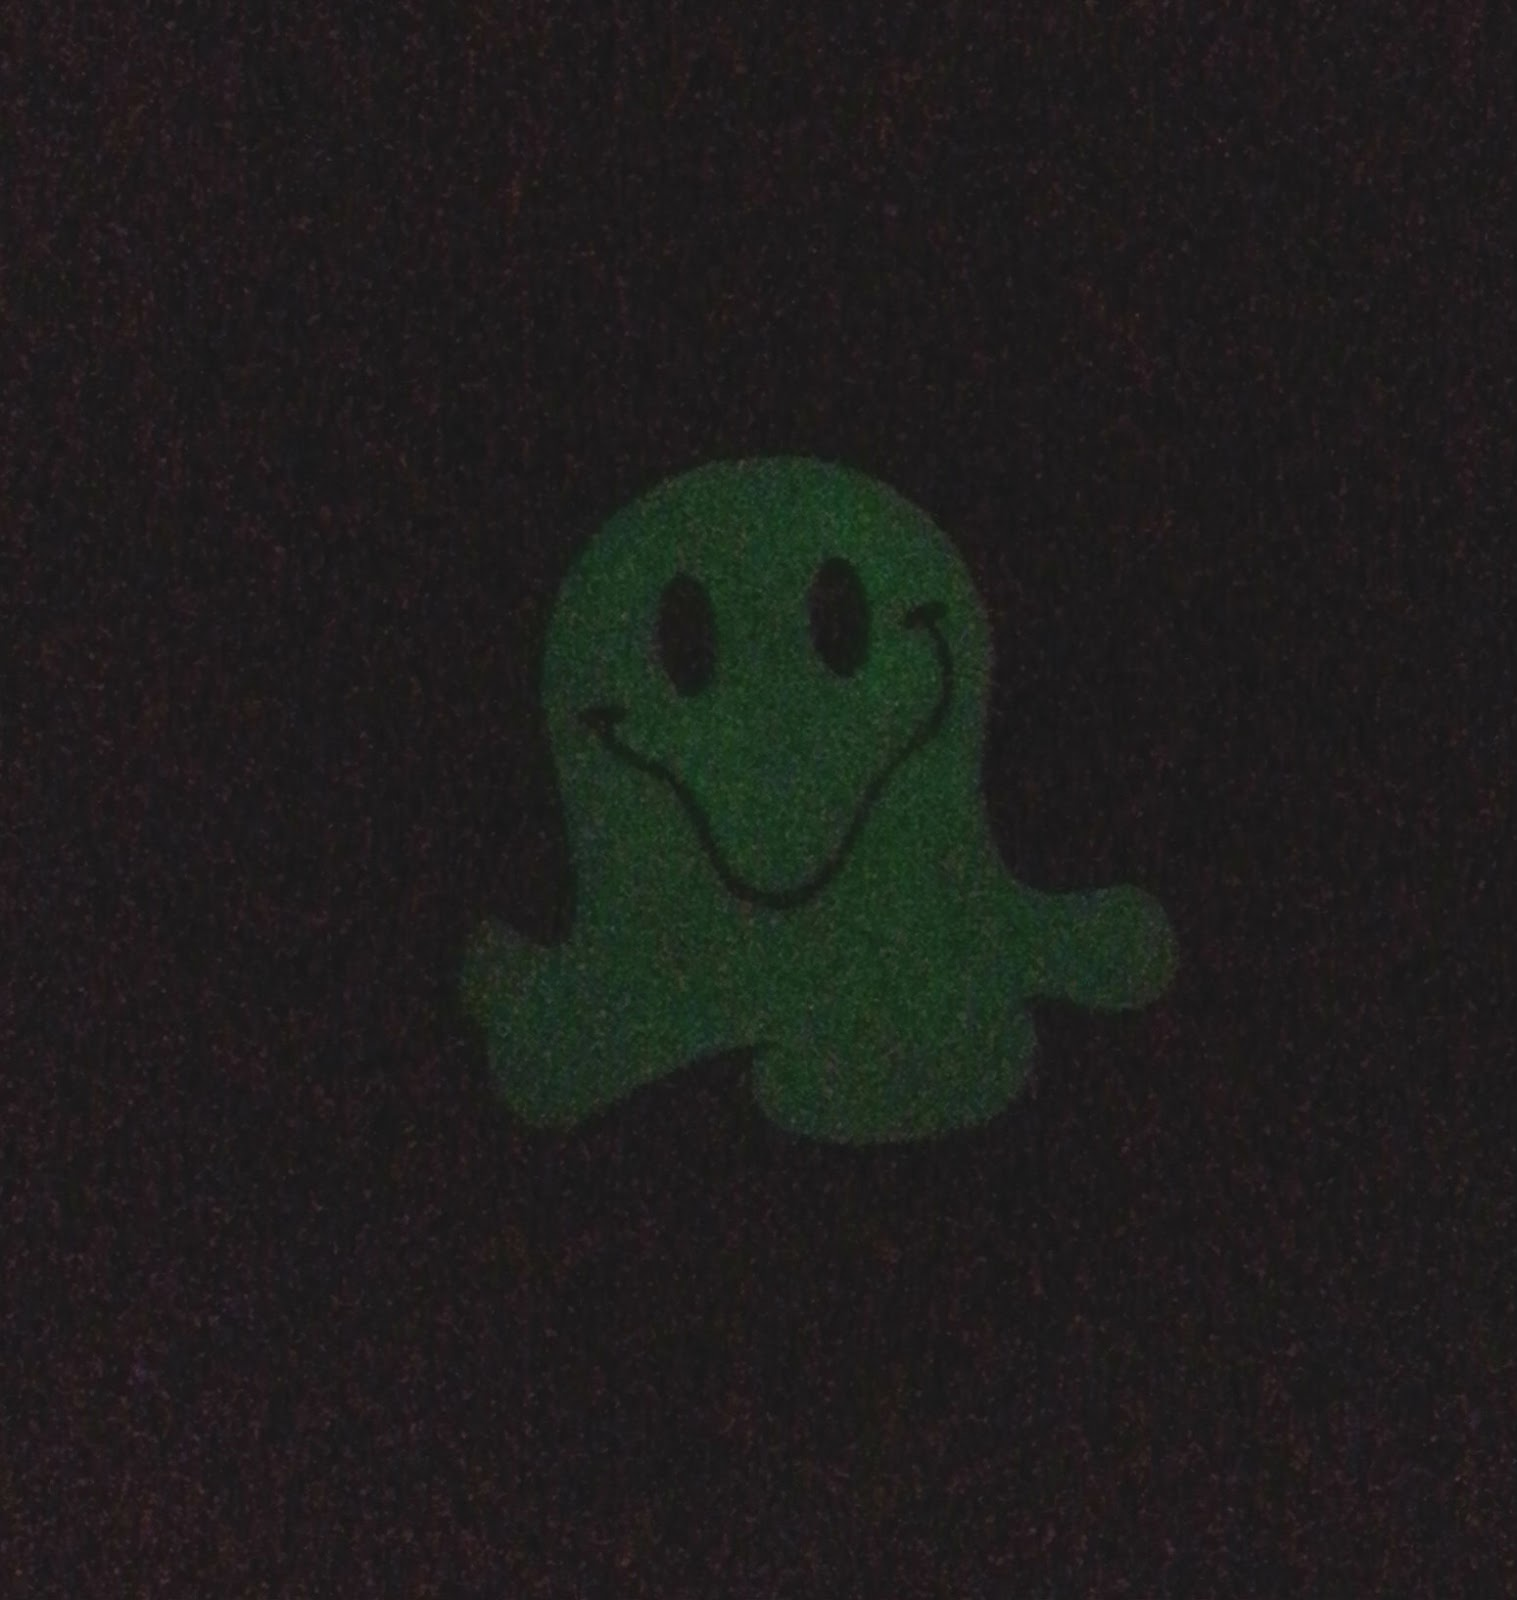 Spookje glow in the dark